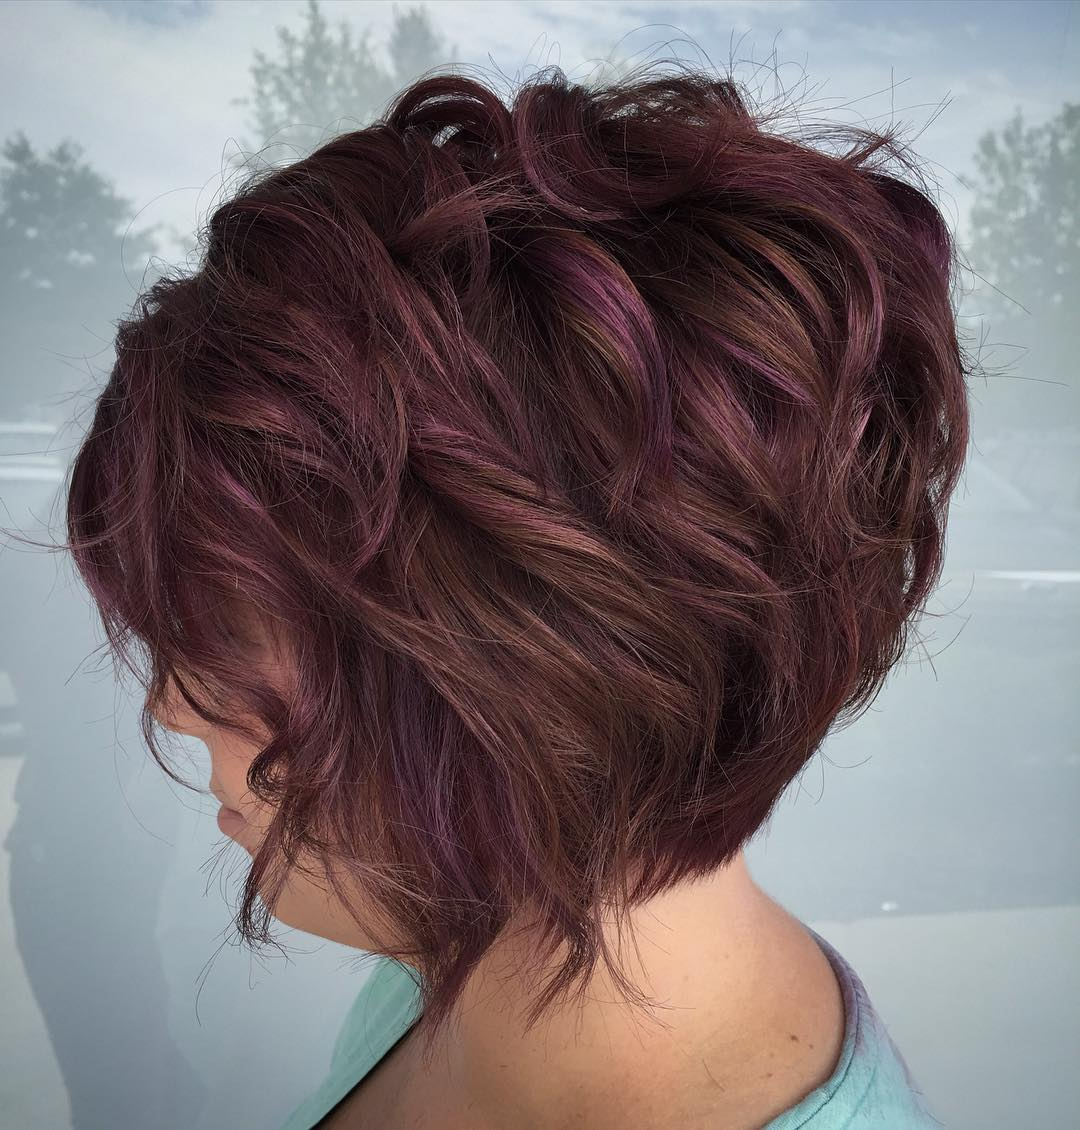 Short Graduated Brown Bob with Subtle Purple Highlights